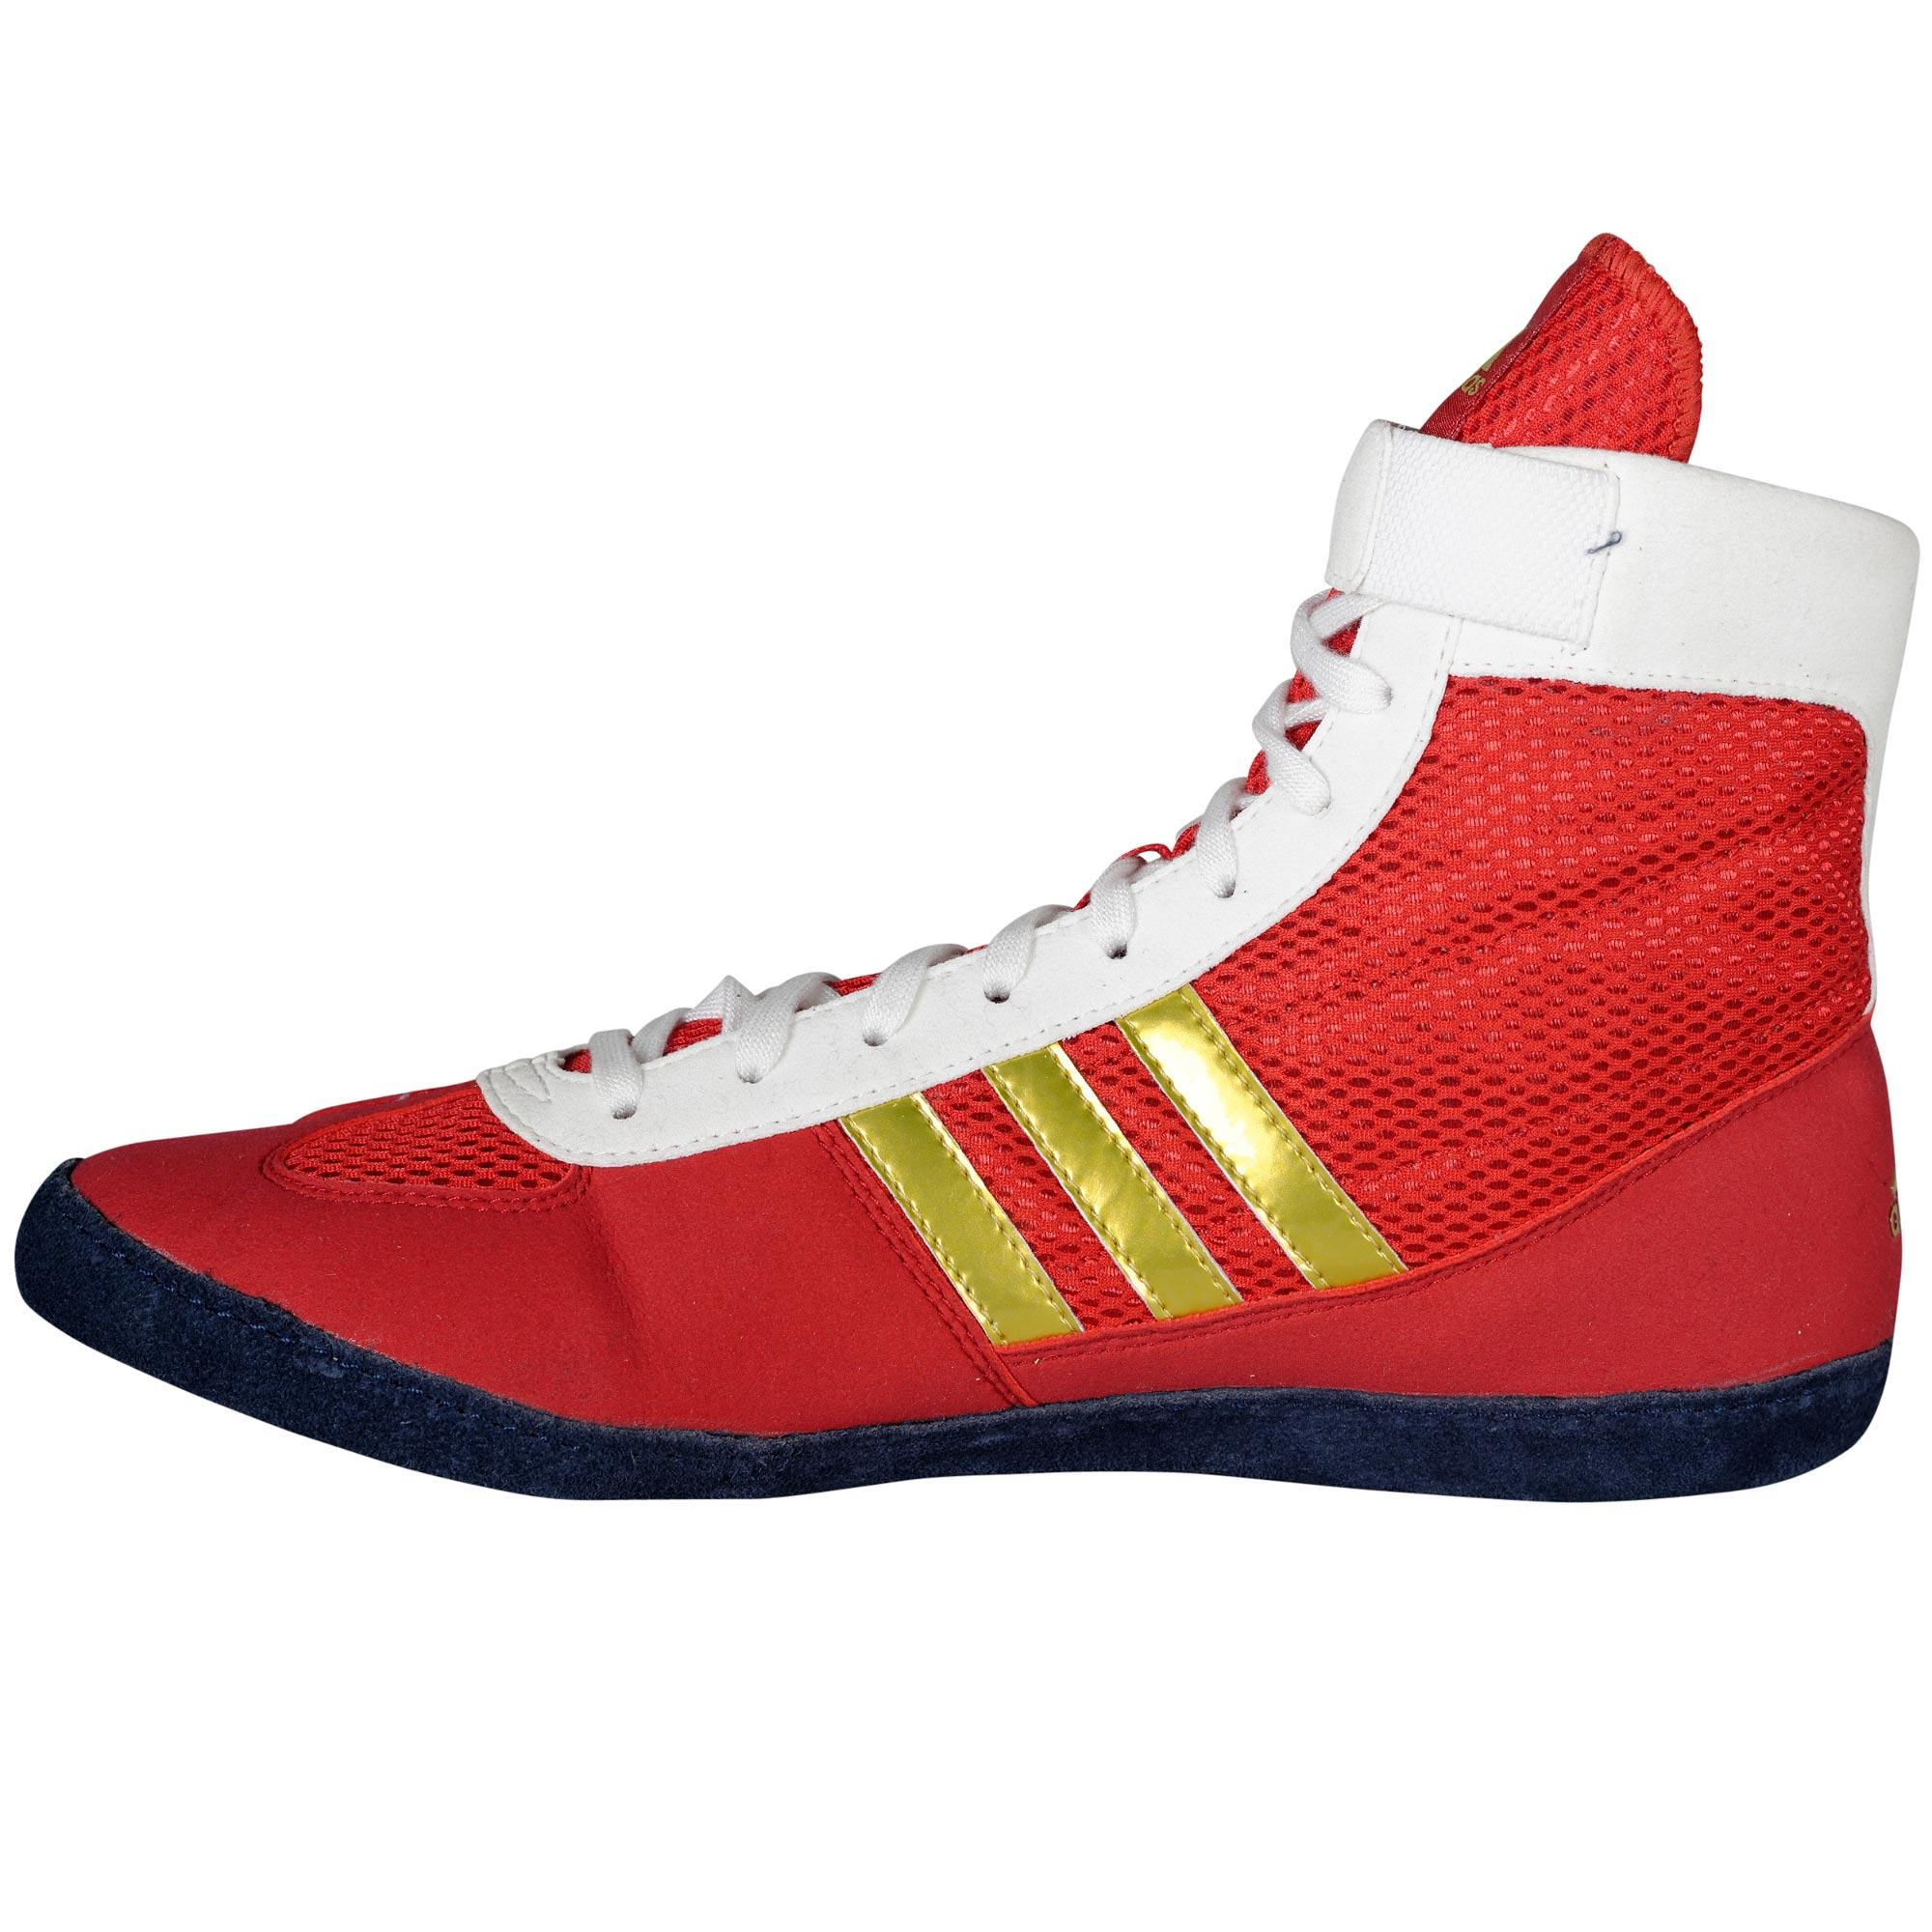 Adidas Combat Speed 4 Jordan Oliver Shoes Wrestlingmart